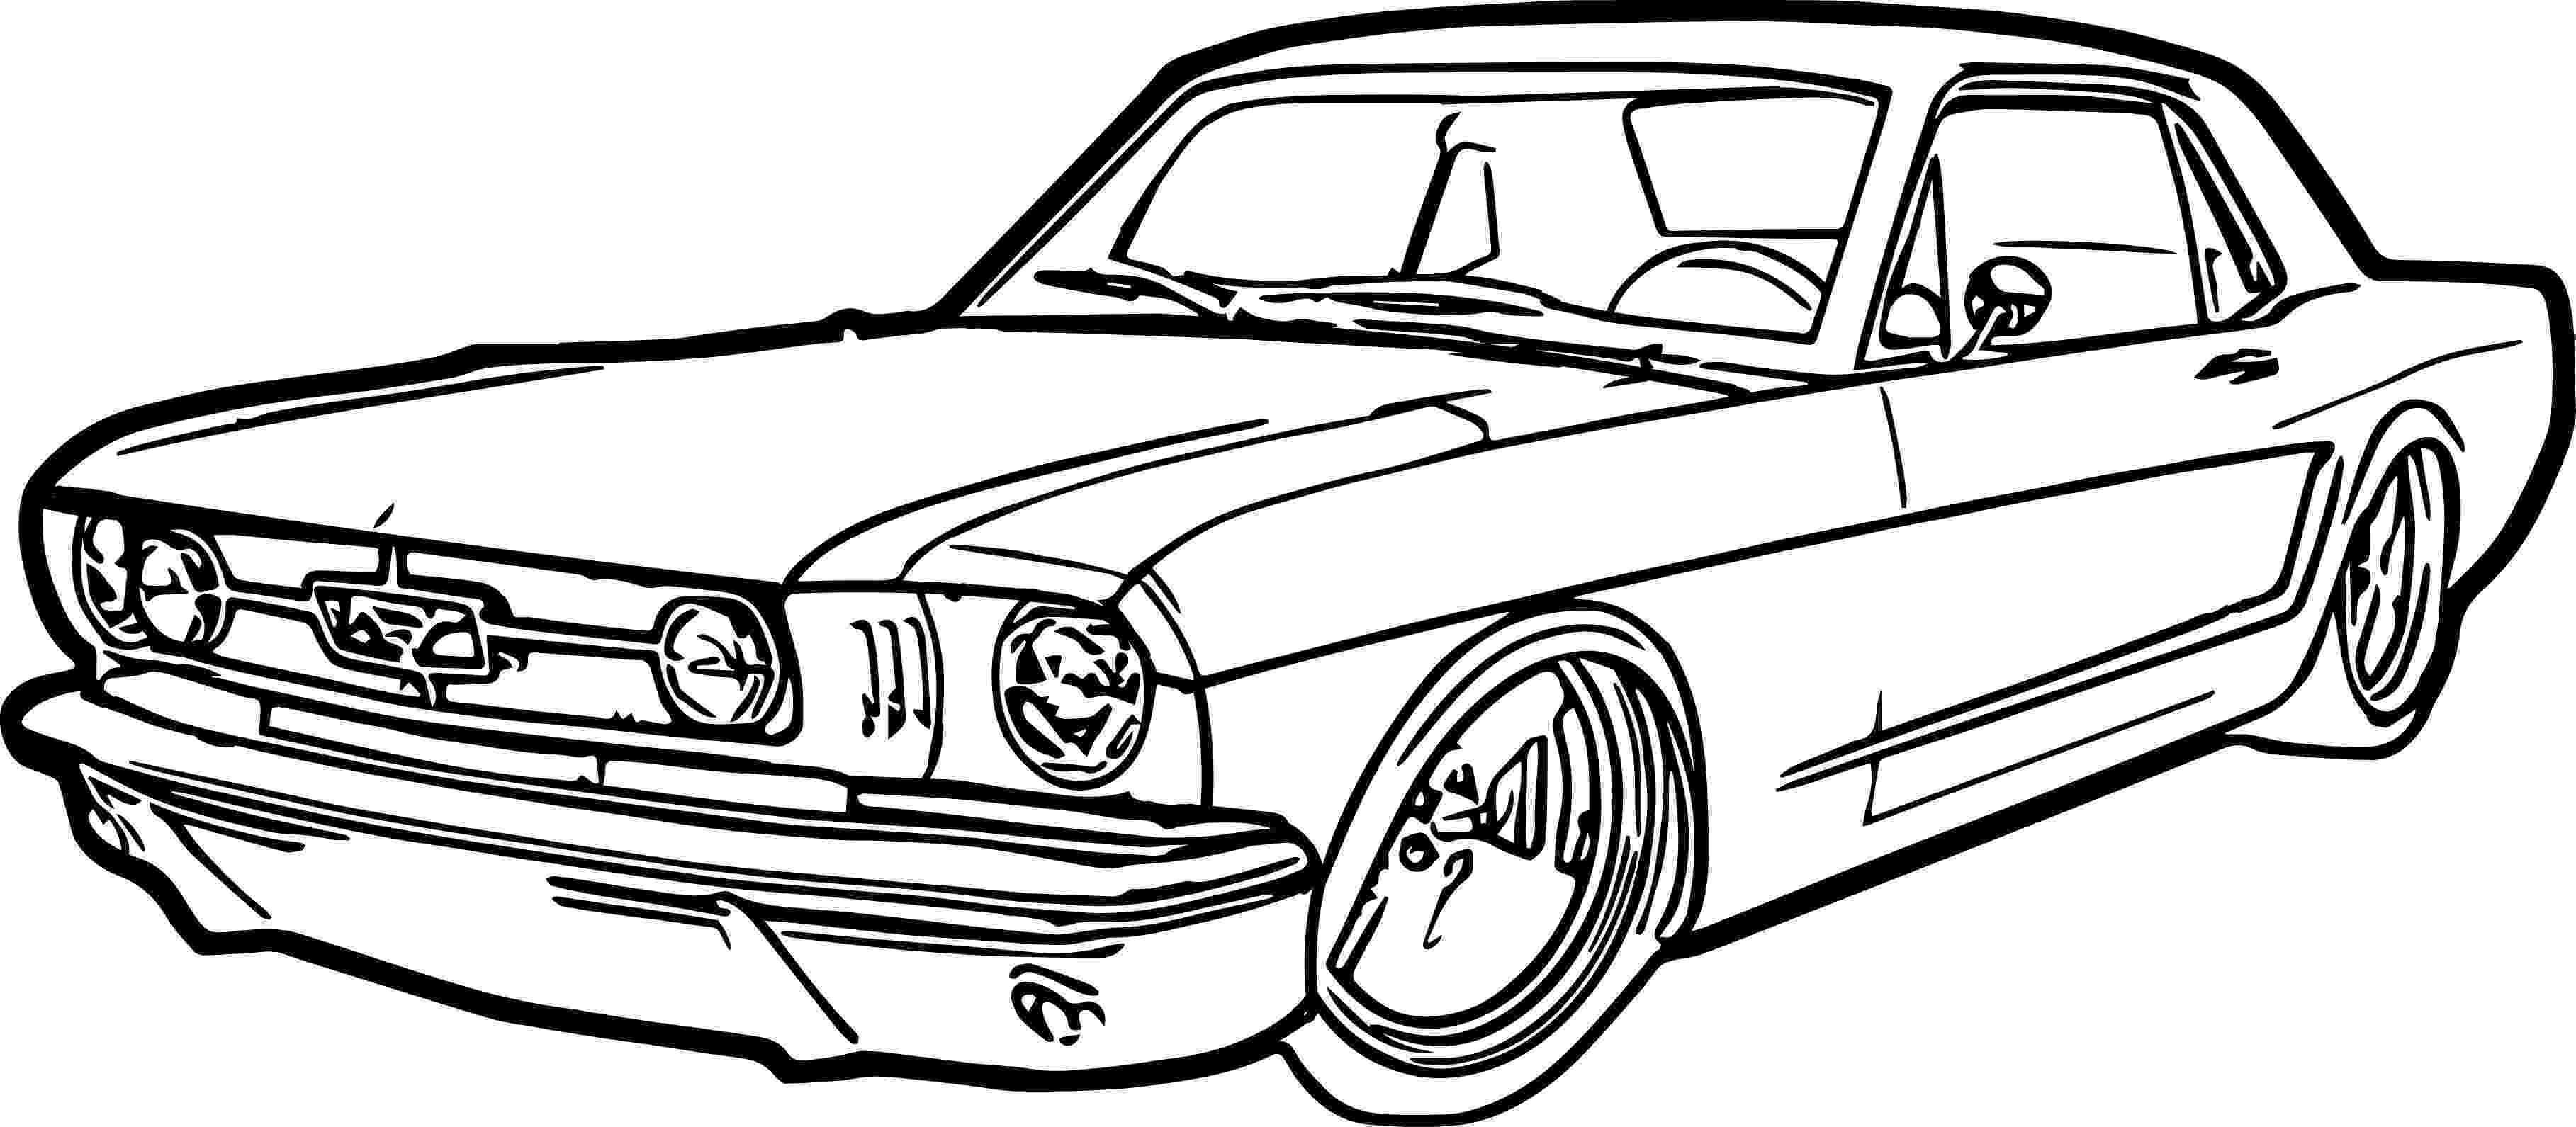 coloring sheet cars muscle car coloring pages to download and print for free cars sheet coloring